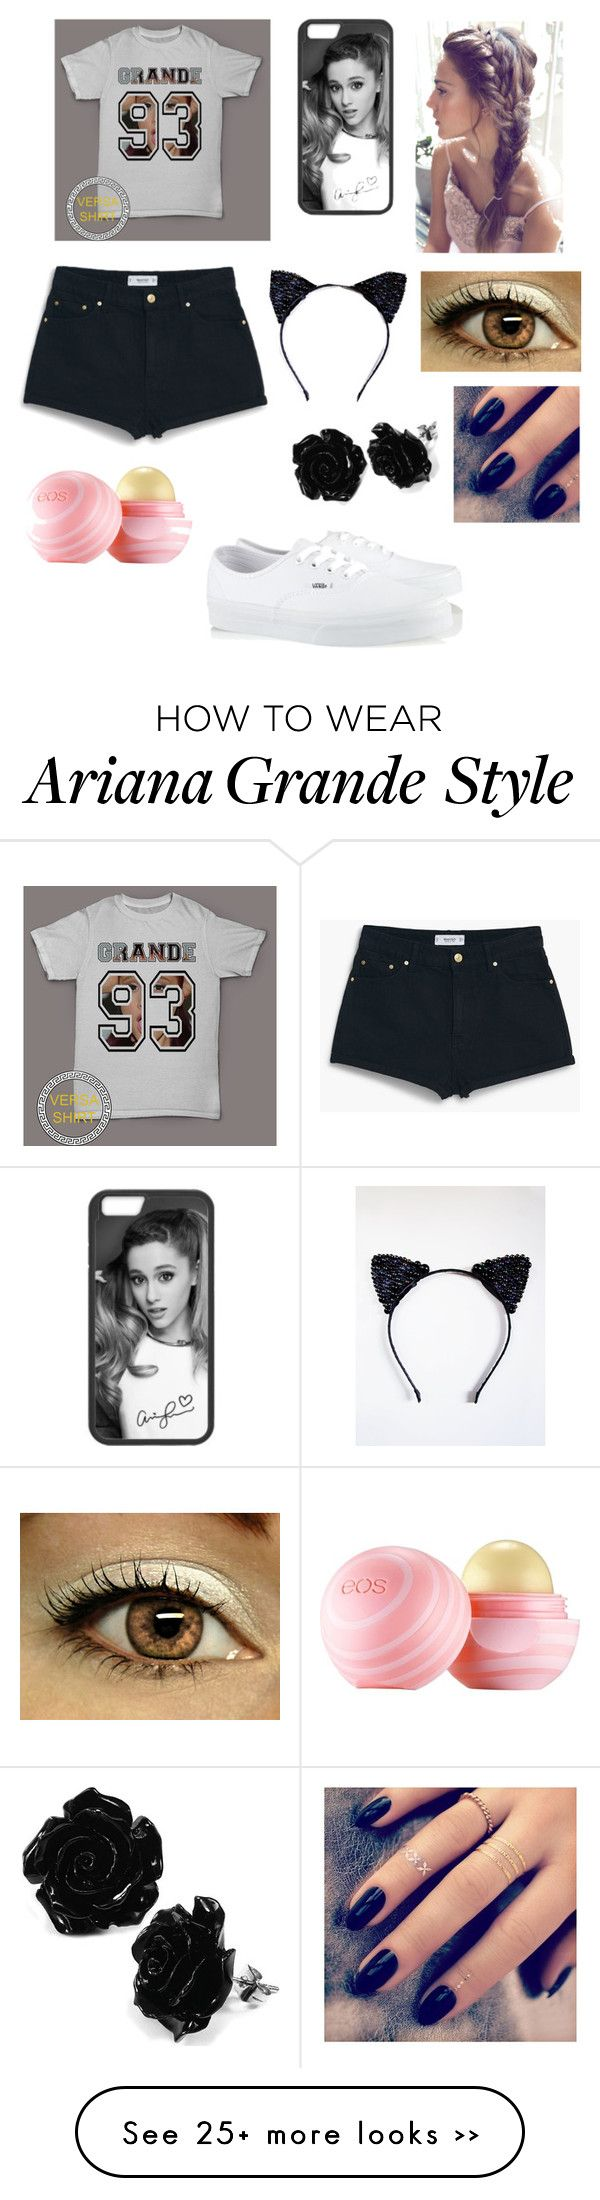 """""""Ariana grande concert"""" by katelyn-huynh on Polyvore"""